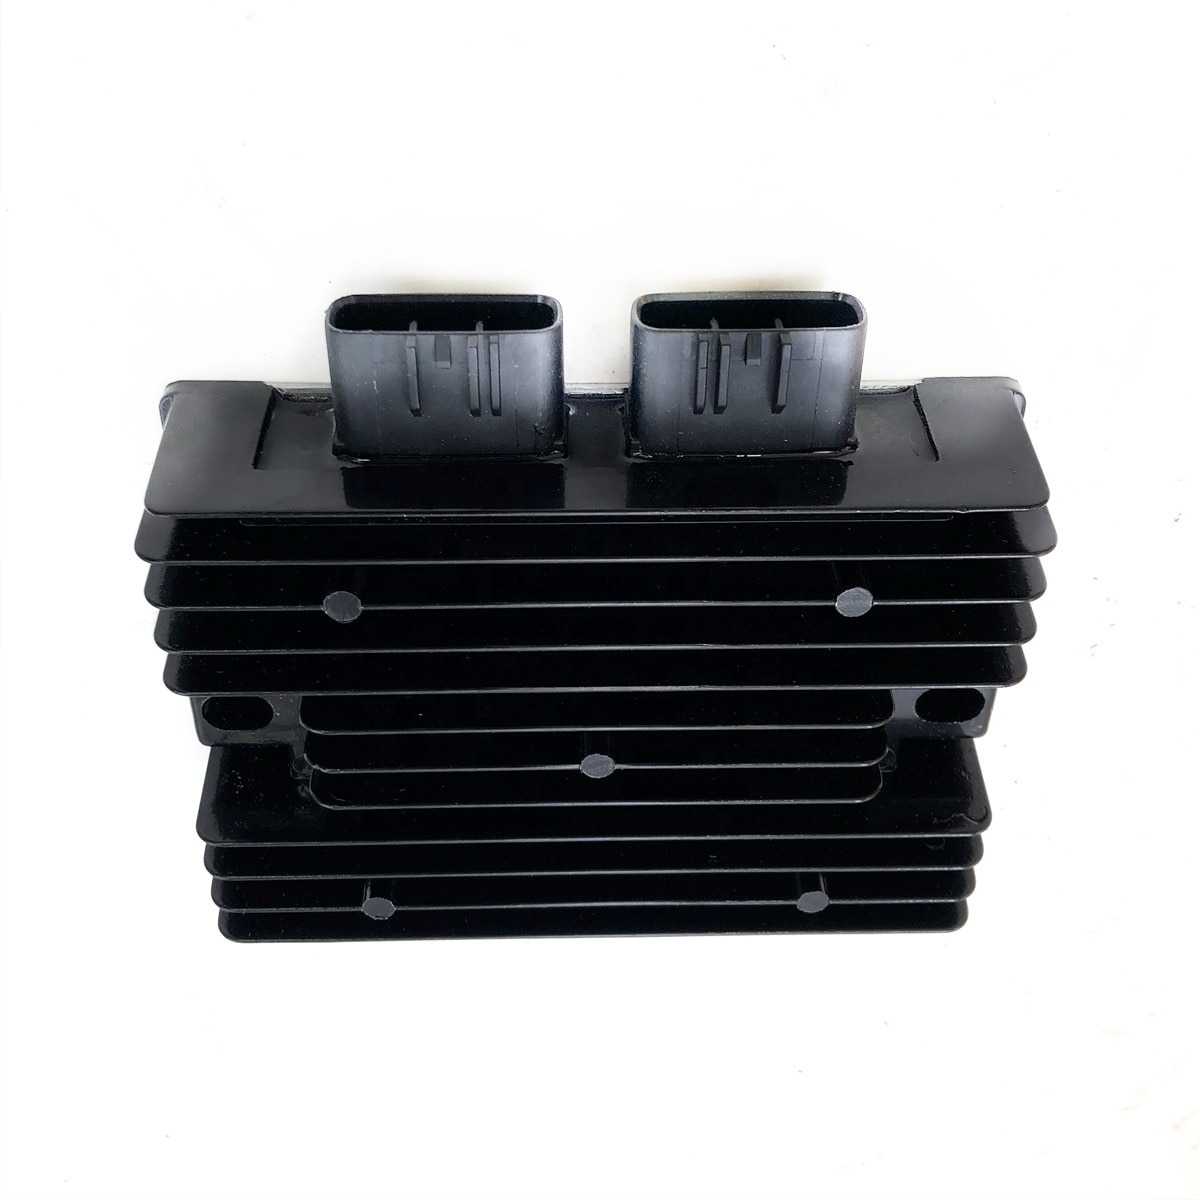 Voltage regulator (high power) for ODES 800 1000 cc Dune Buggy 4x4 Body Parts 21051100201 enlarge